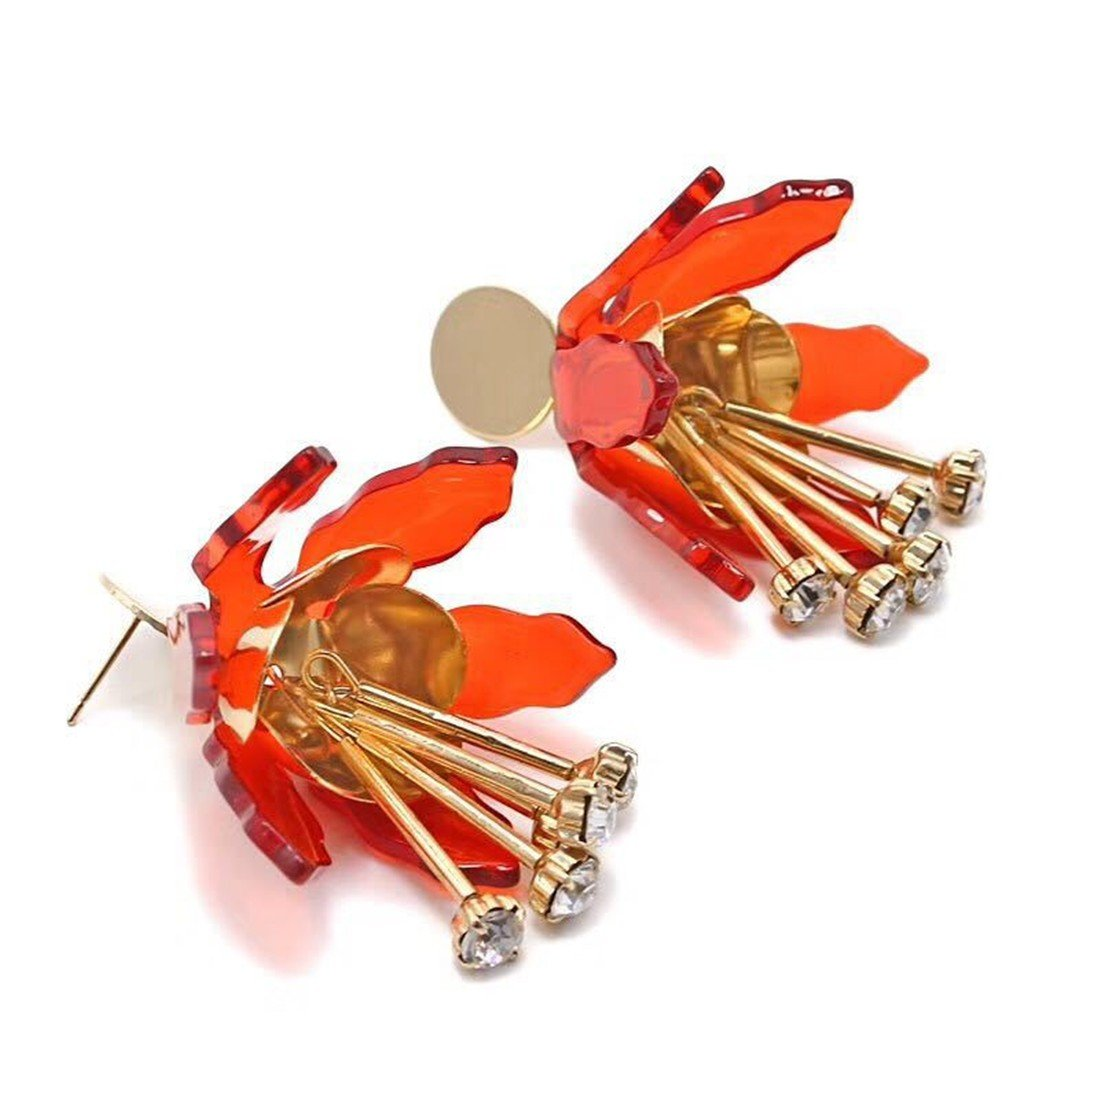 acrylic ear studs color flowers ball earrings|clip on earrings|ear cuffs|dangle earrings|earring jackets|hoop earrings|stud earrings|Womens fashion earrings